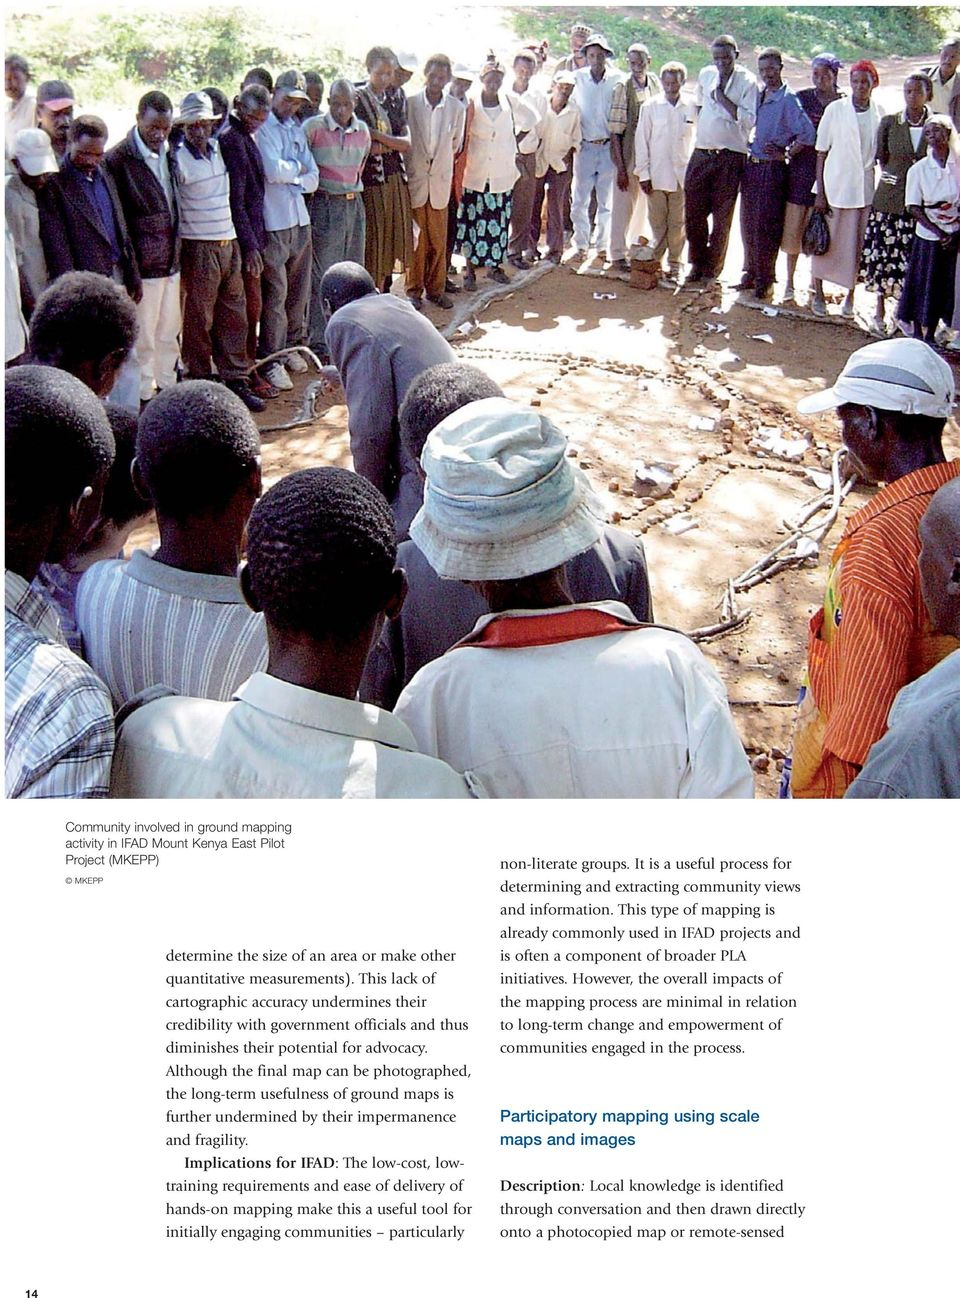 Although the final map can be photographed, the long-term usefulness of ground maps is further undermined by their impermanence and fragility.